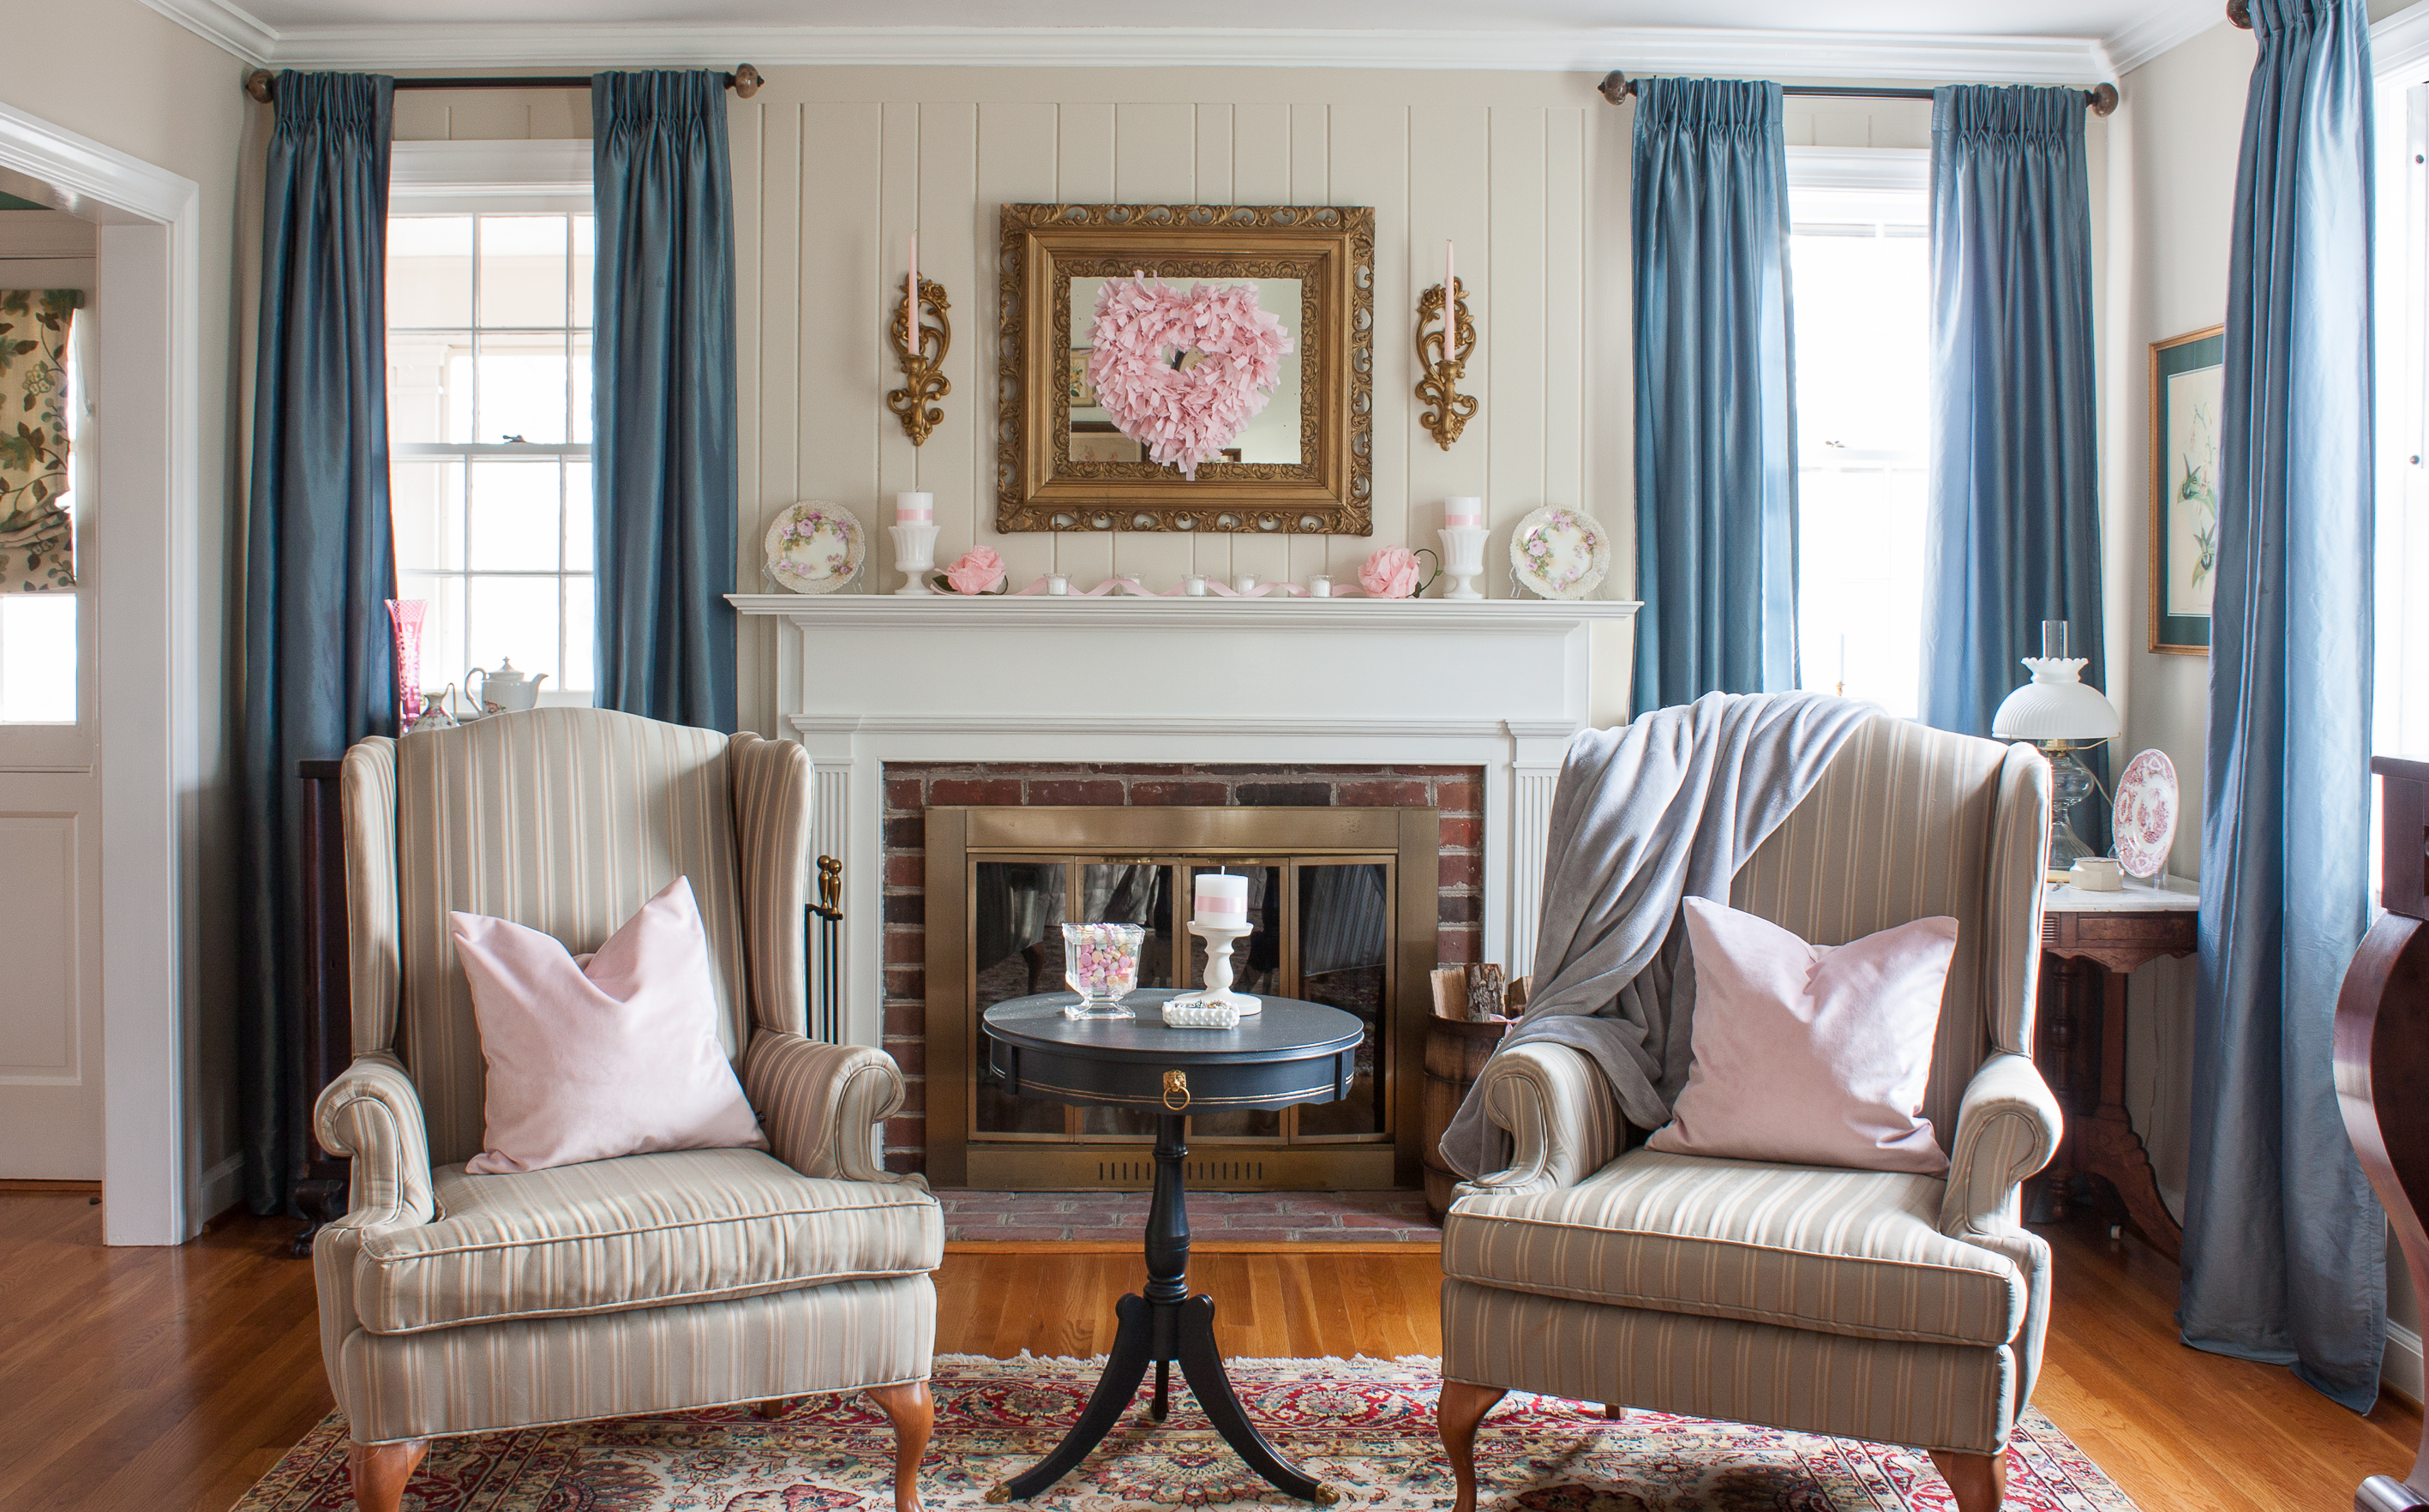 Romantic Valentine's Day Mantel and Living Room Decor - Get ideas for decorating for Valentine's Day using vintage from 20 bloggers. #valentinesday #valentinesdaydecor #romanticdecor #vintage #vintagedecor